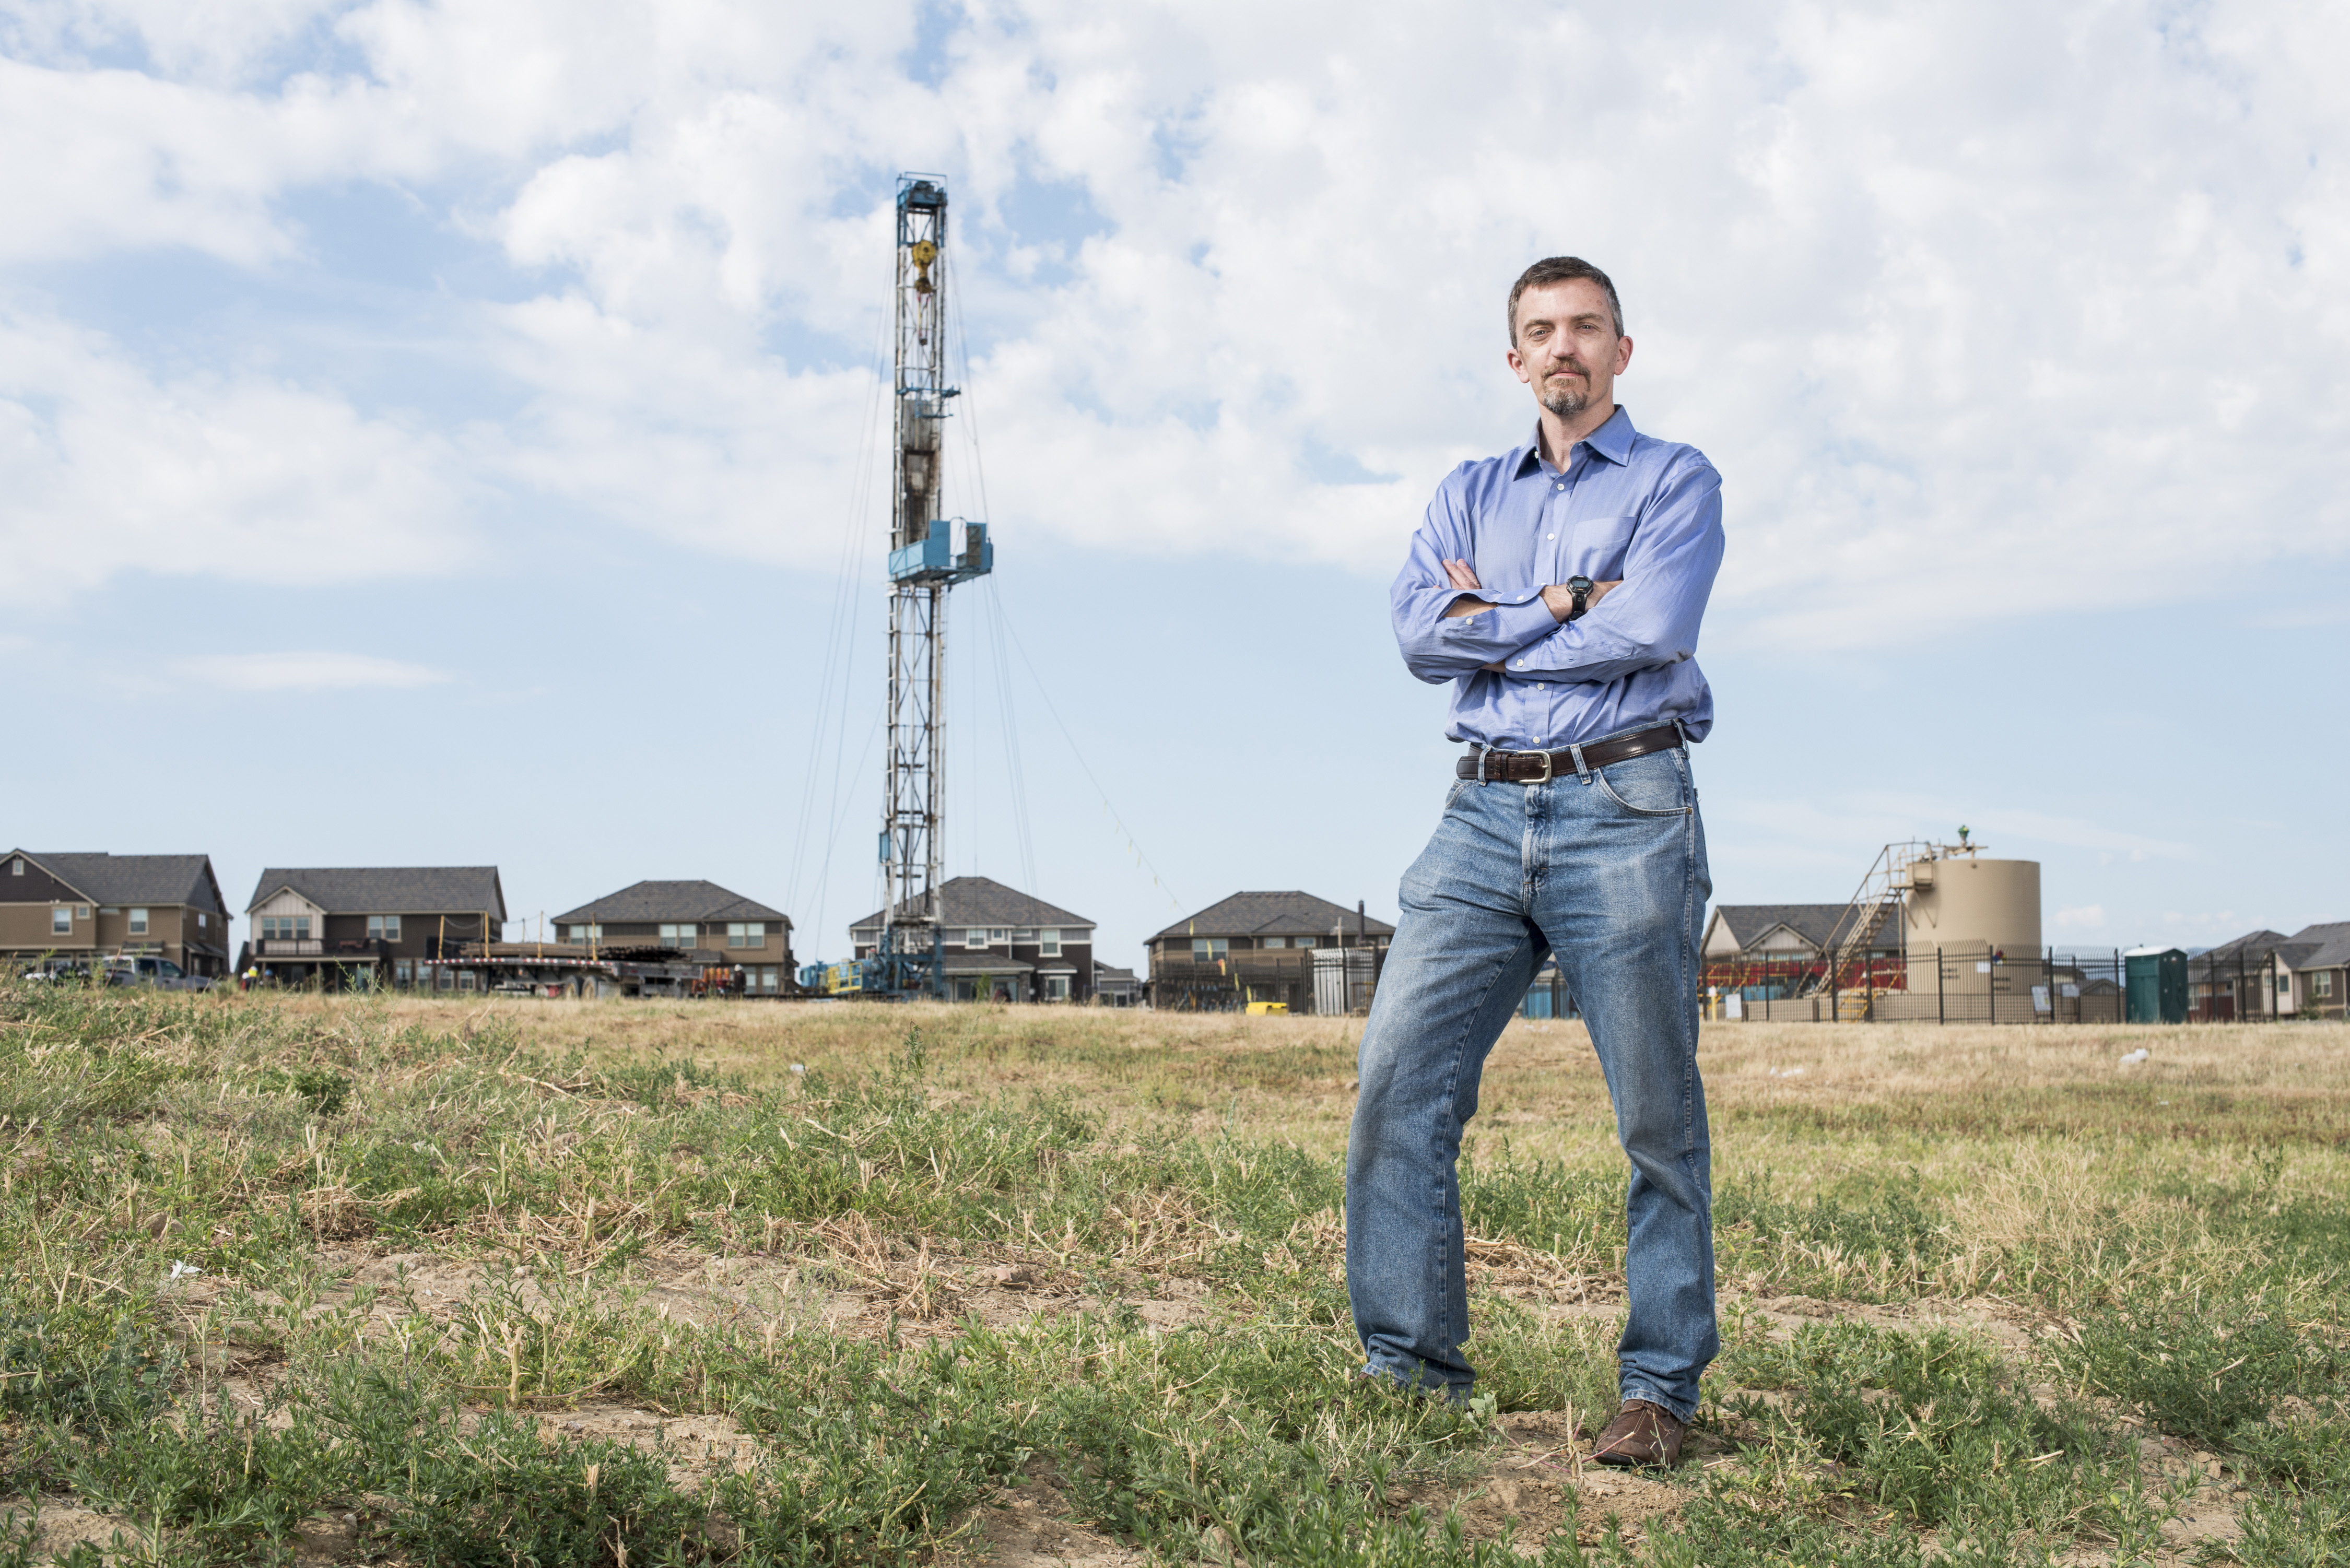 Earthjustice attorney Mike Freeman at an oil rig in Erie, Colorado